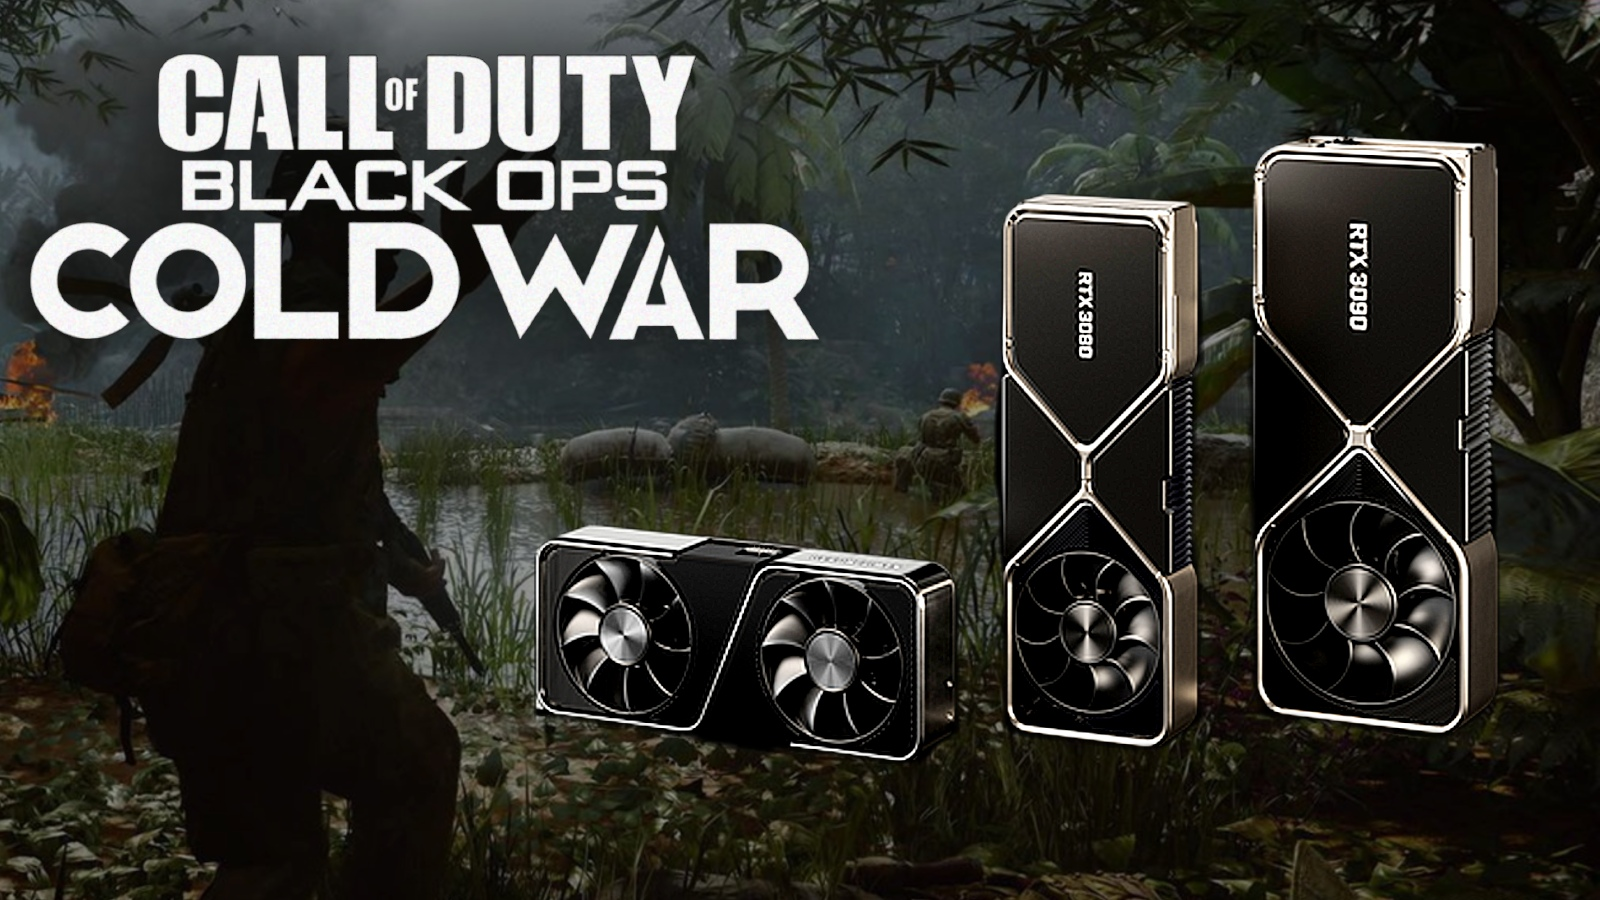 Black Ops Cold War free with NVIDIA